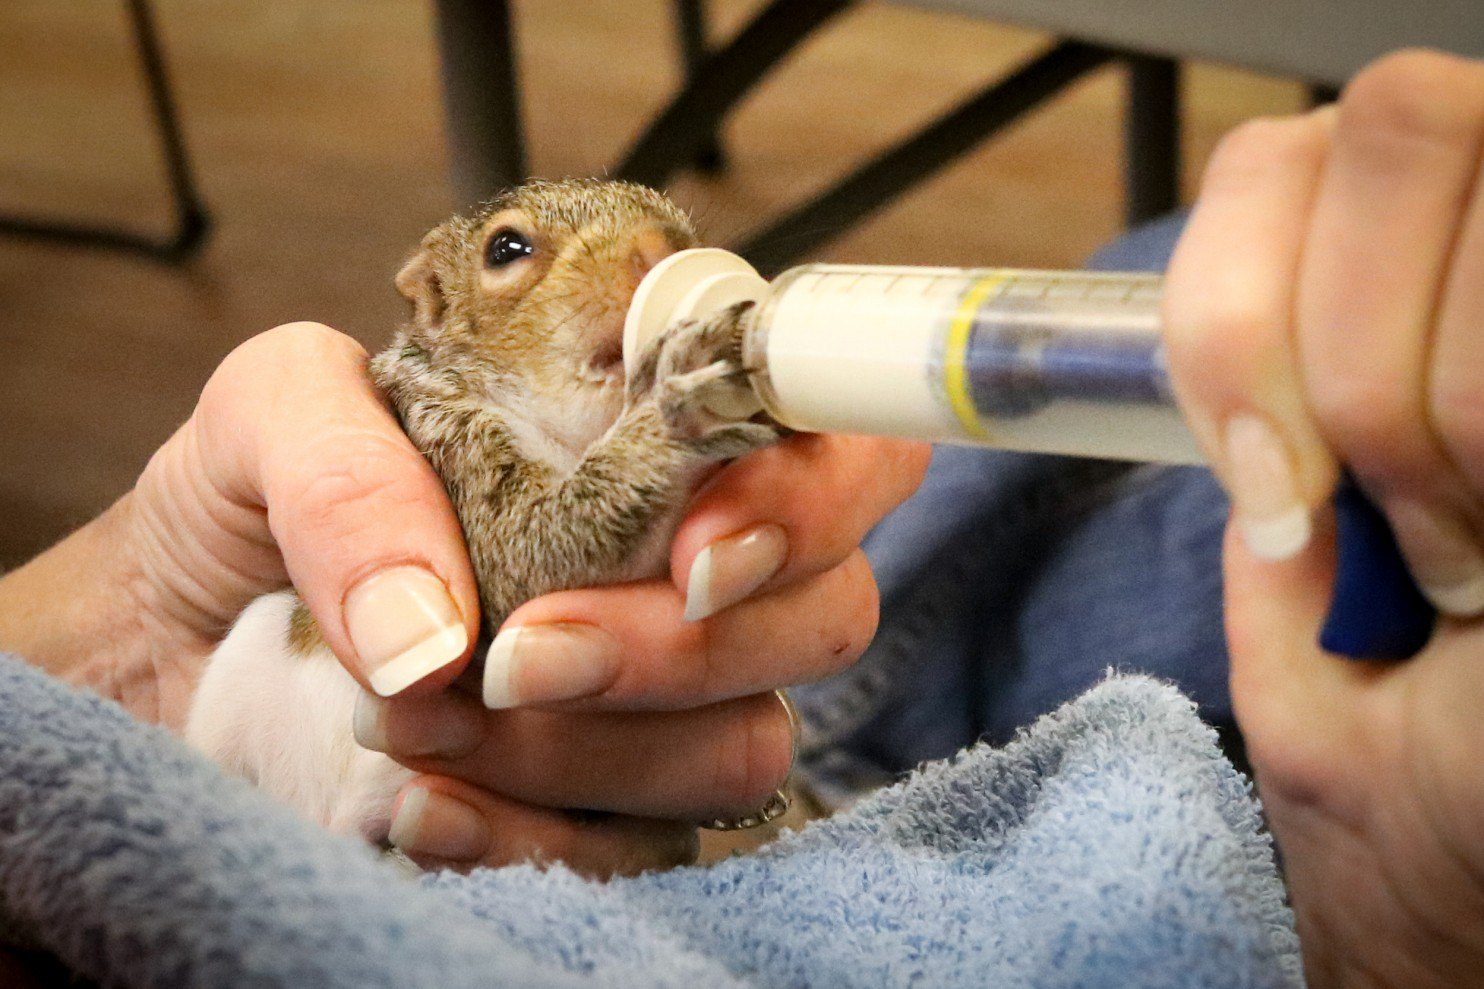 A rescued baby squirrel gets fed a powder formula, similar to its mother's milk, through a syringe. Photo courtesy of Evelyn's Wildlife Refuge via The Washington Post